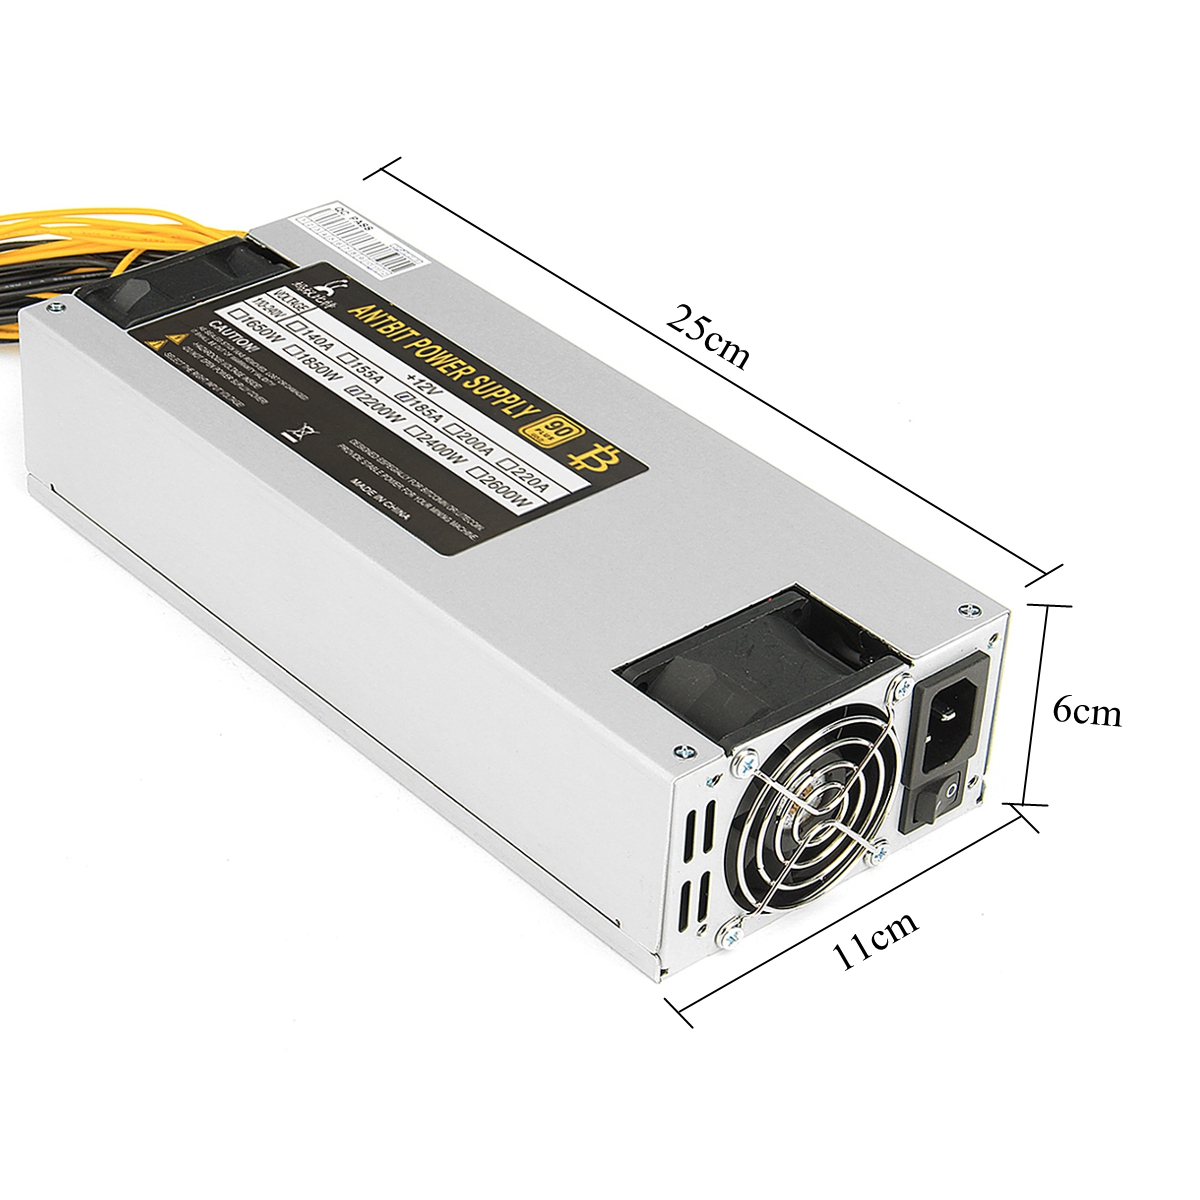 1600W~2200W Mining Power Supply Miner Mining For ETH Rig Ethereum Miner S9 S7 L3+ Plus